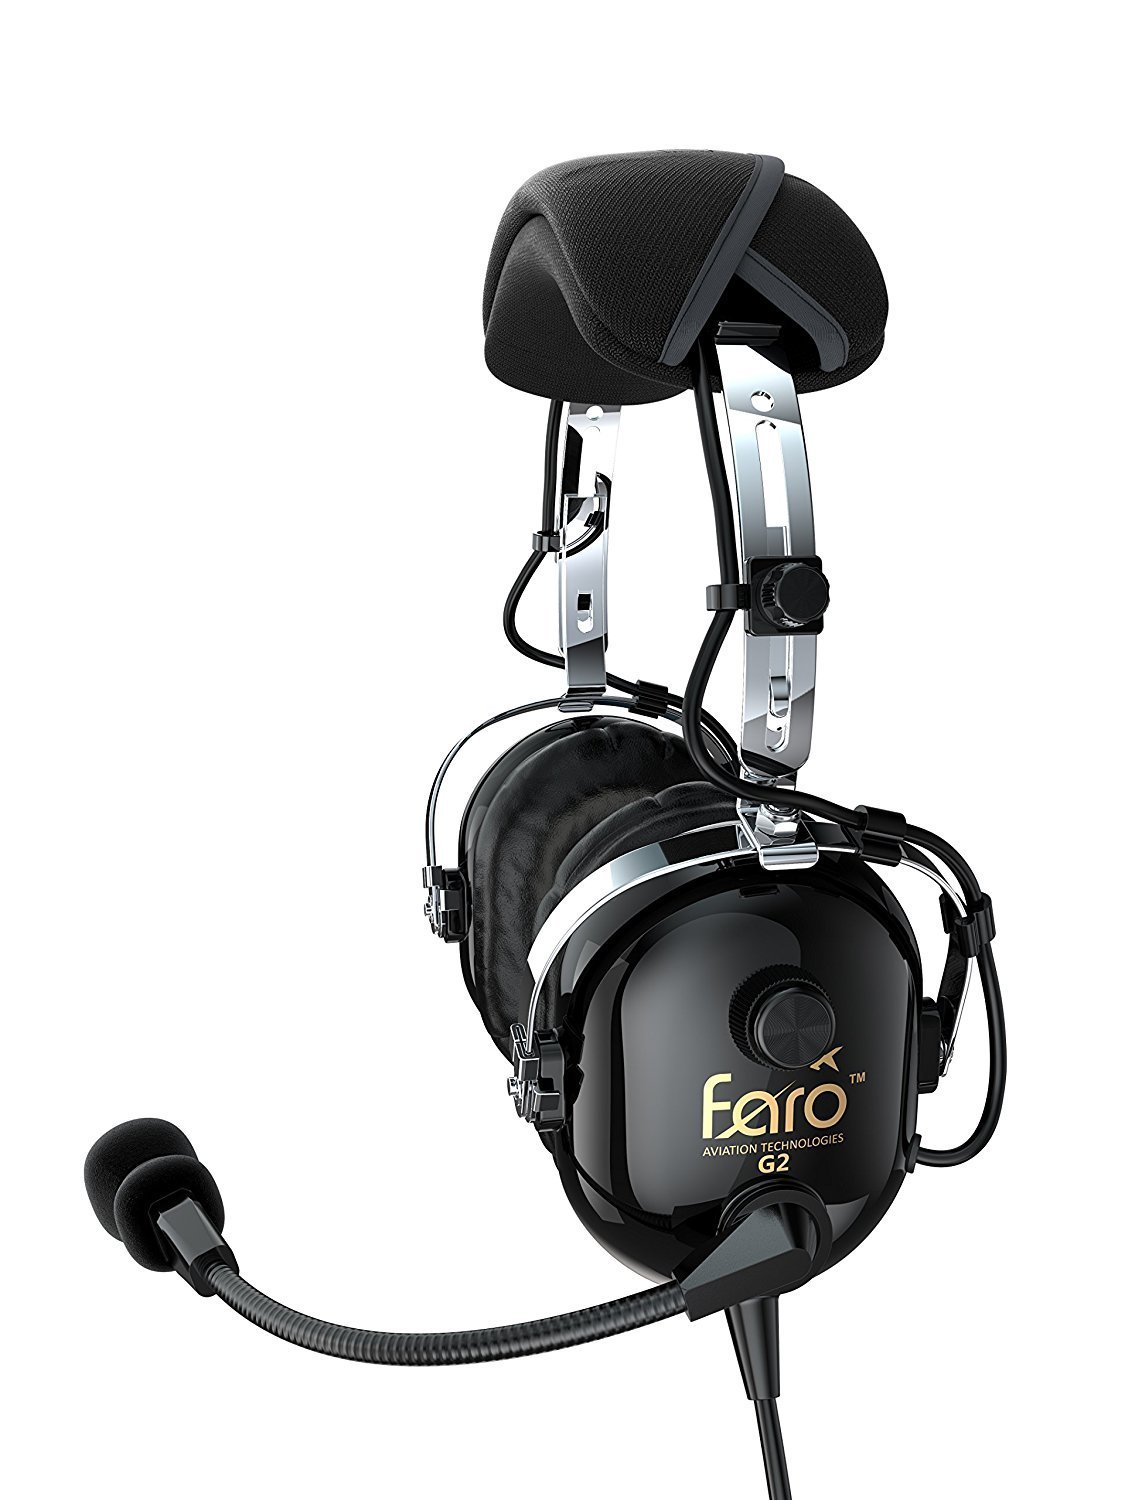 Faro G2 ANR Aviation Headset